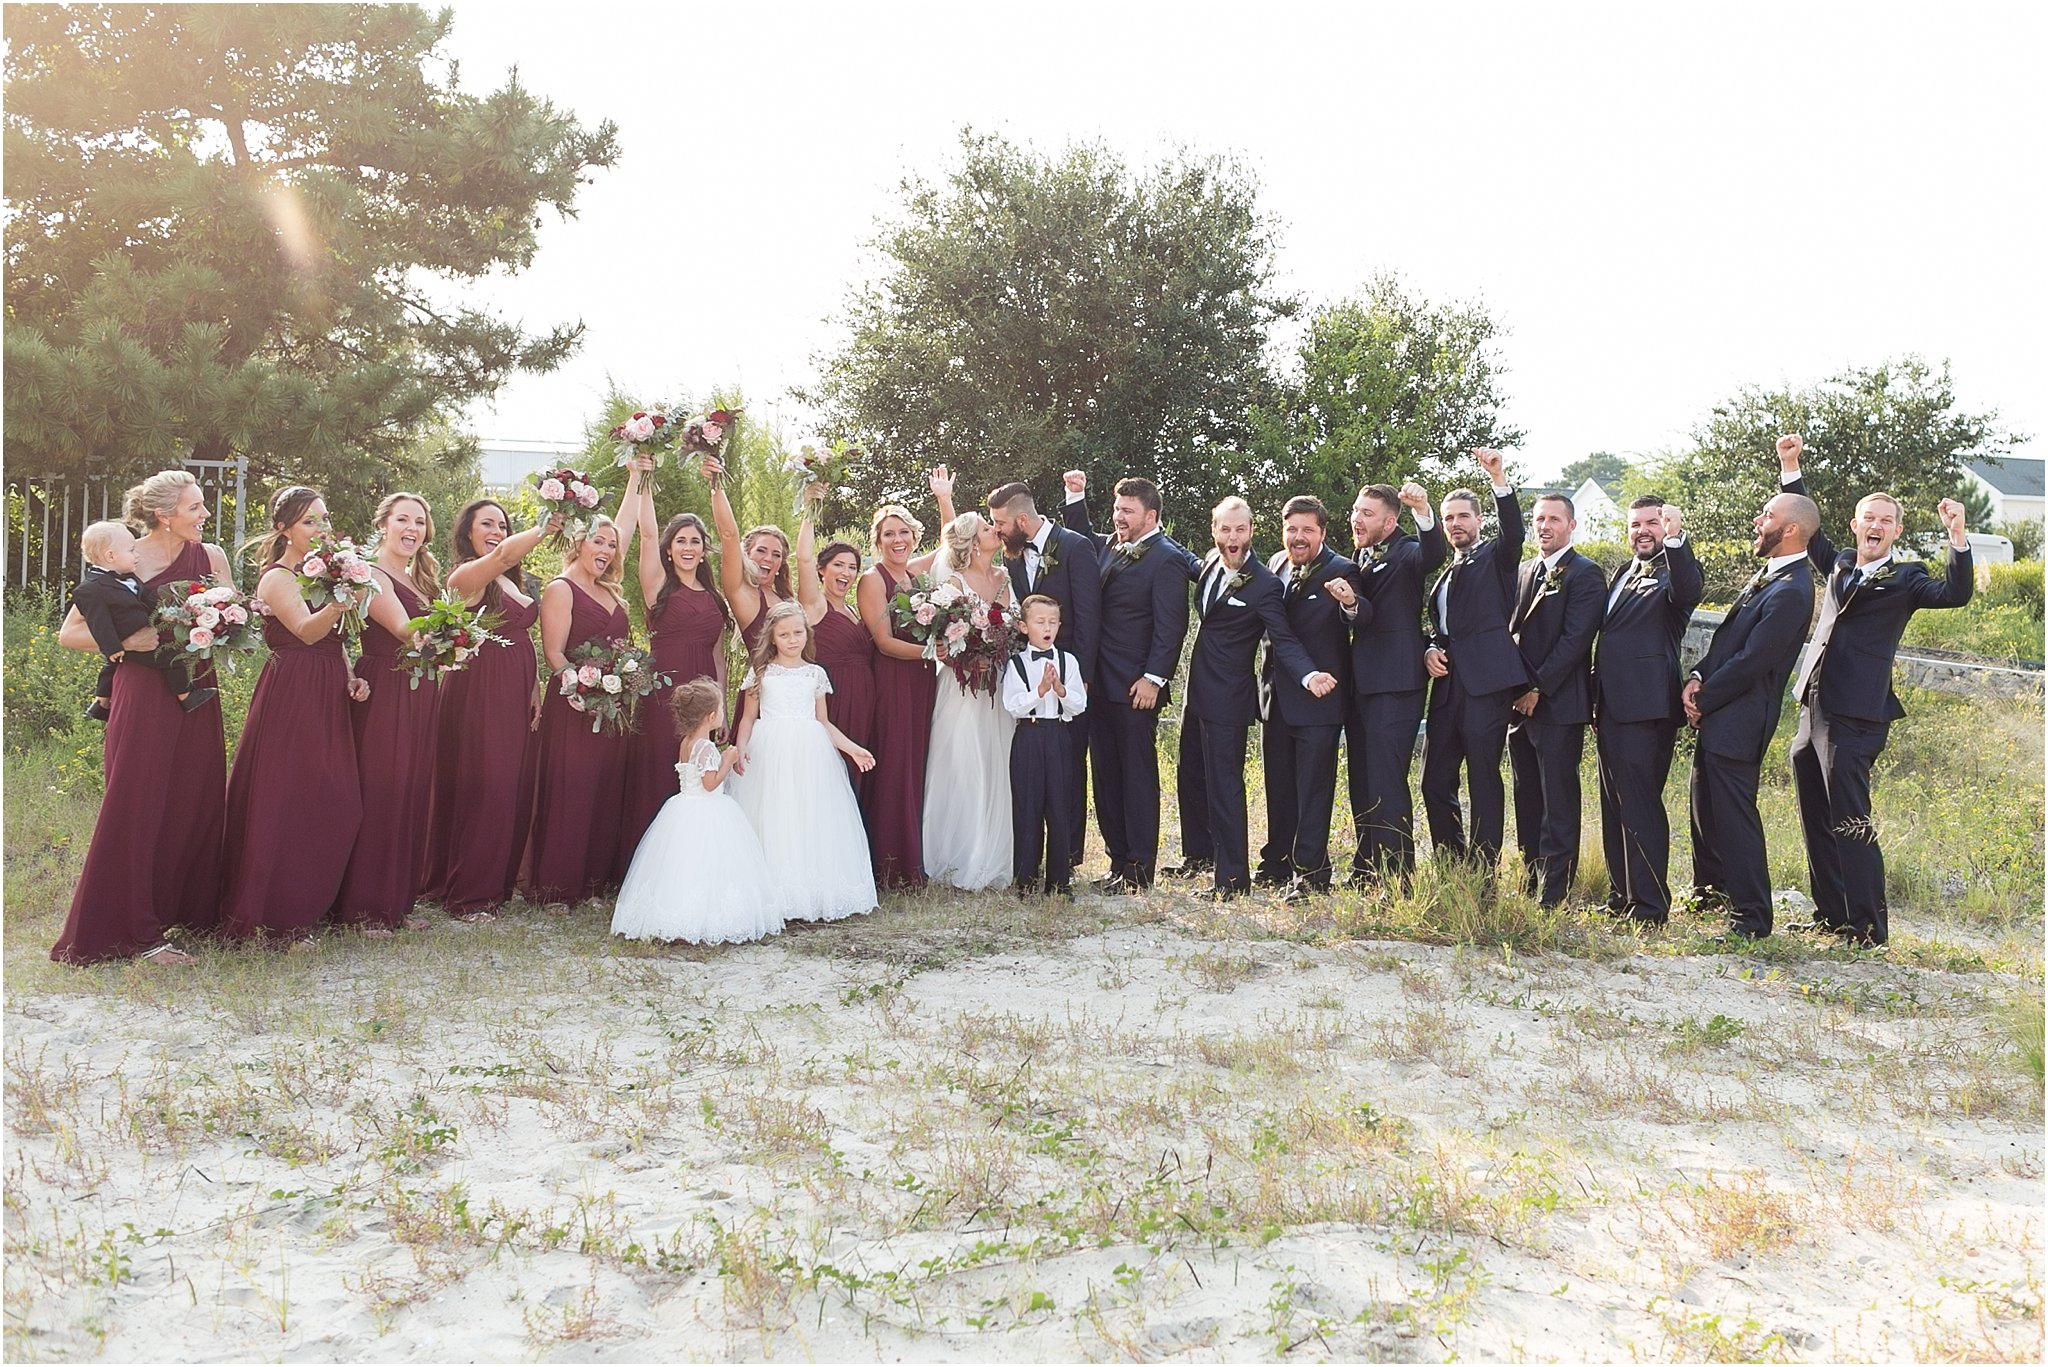 jessica_ryan_photography_virginia_wedding_photographer_candid_authentic_hampton_roads_wedding_photography_marina_shores_yacht_club_first_landing_state_park_woodland_theme_garden_3326